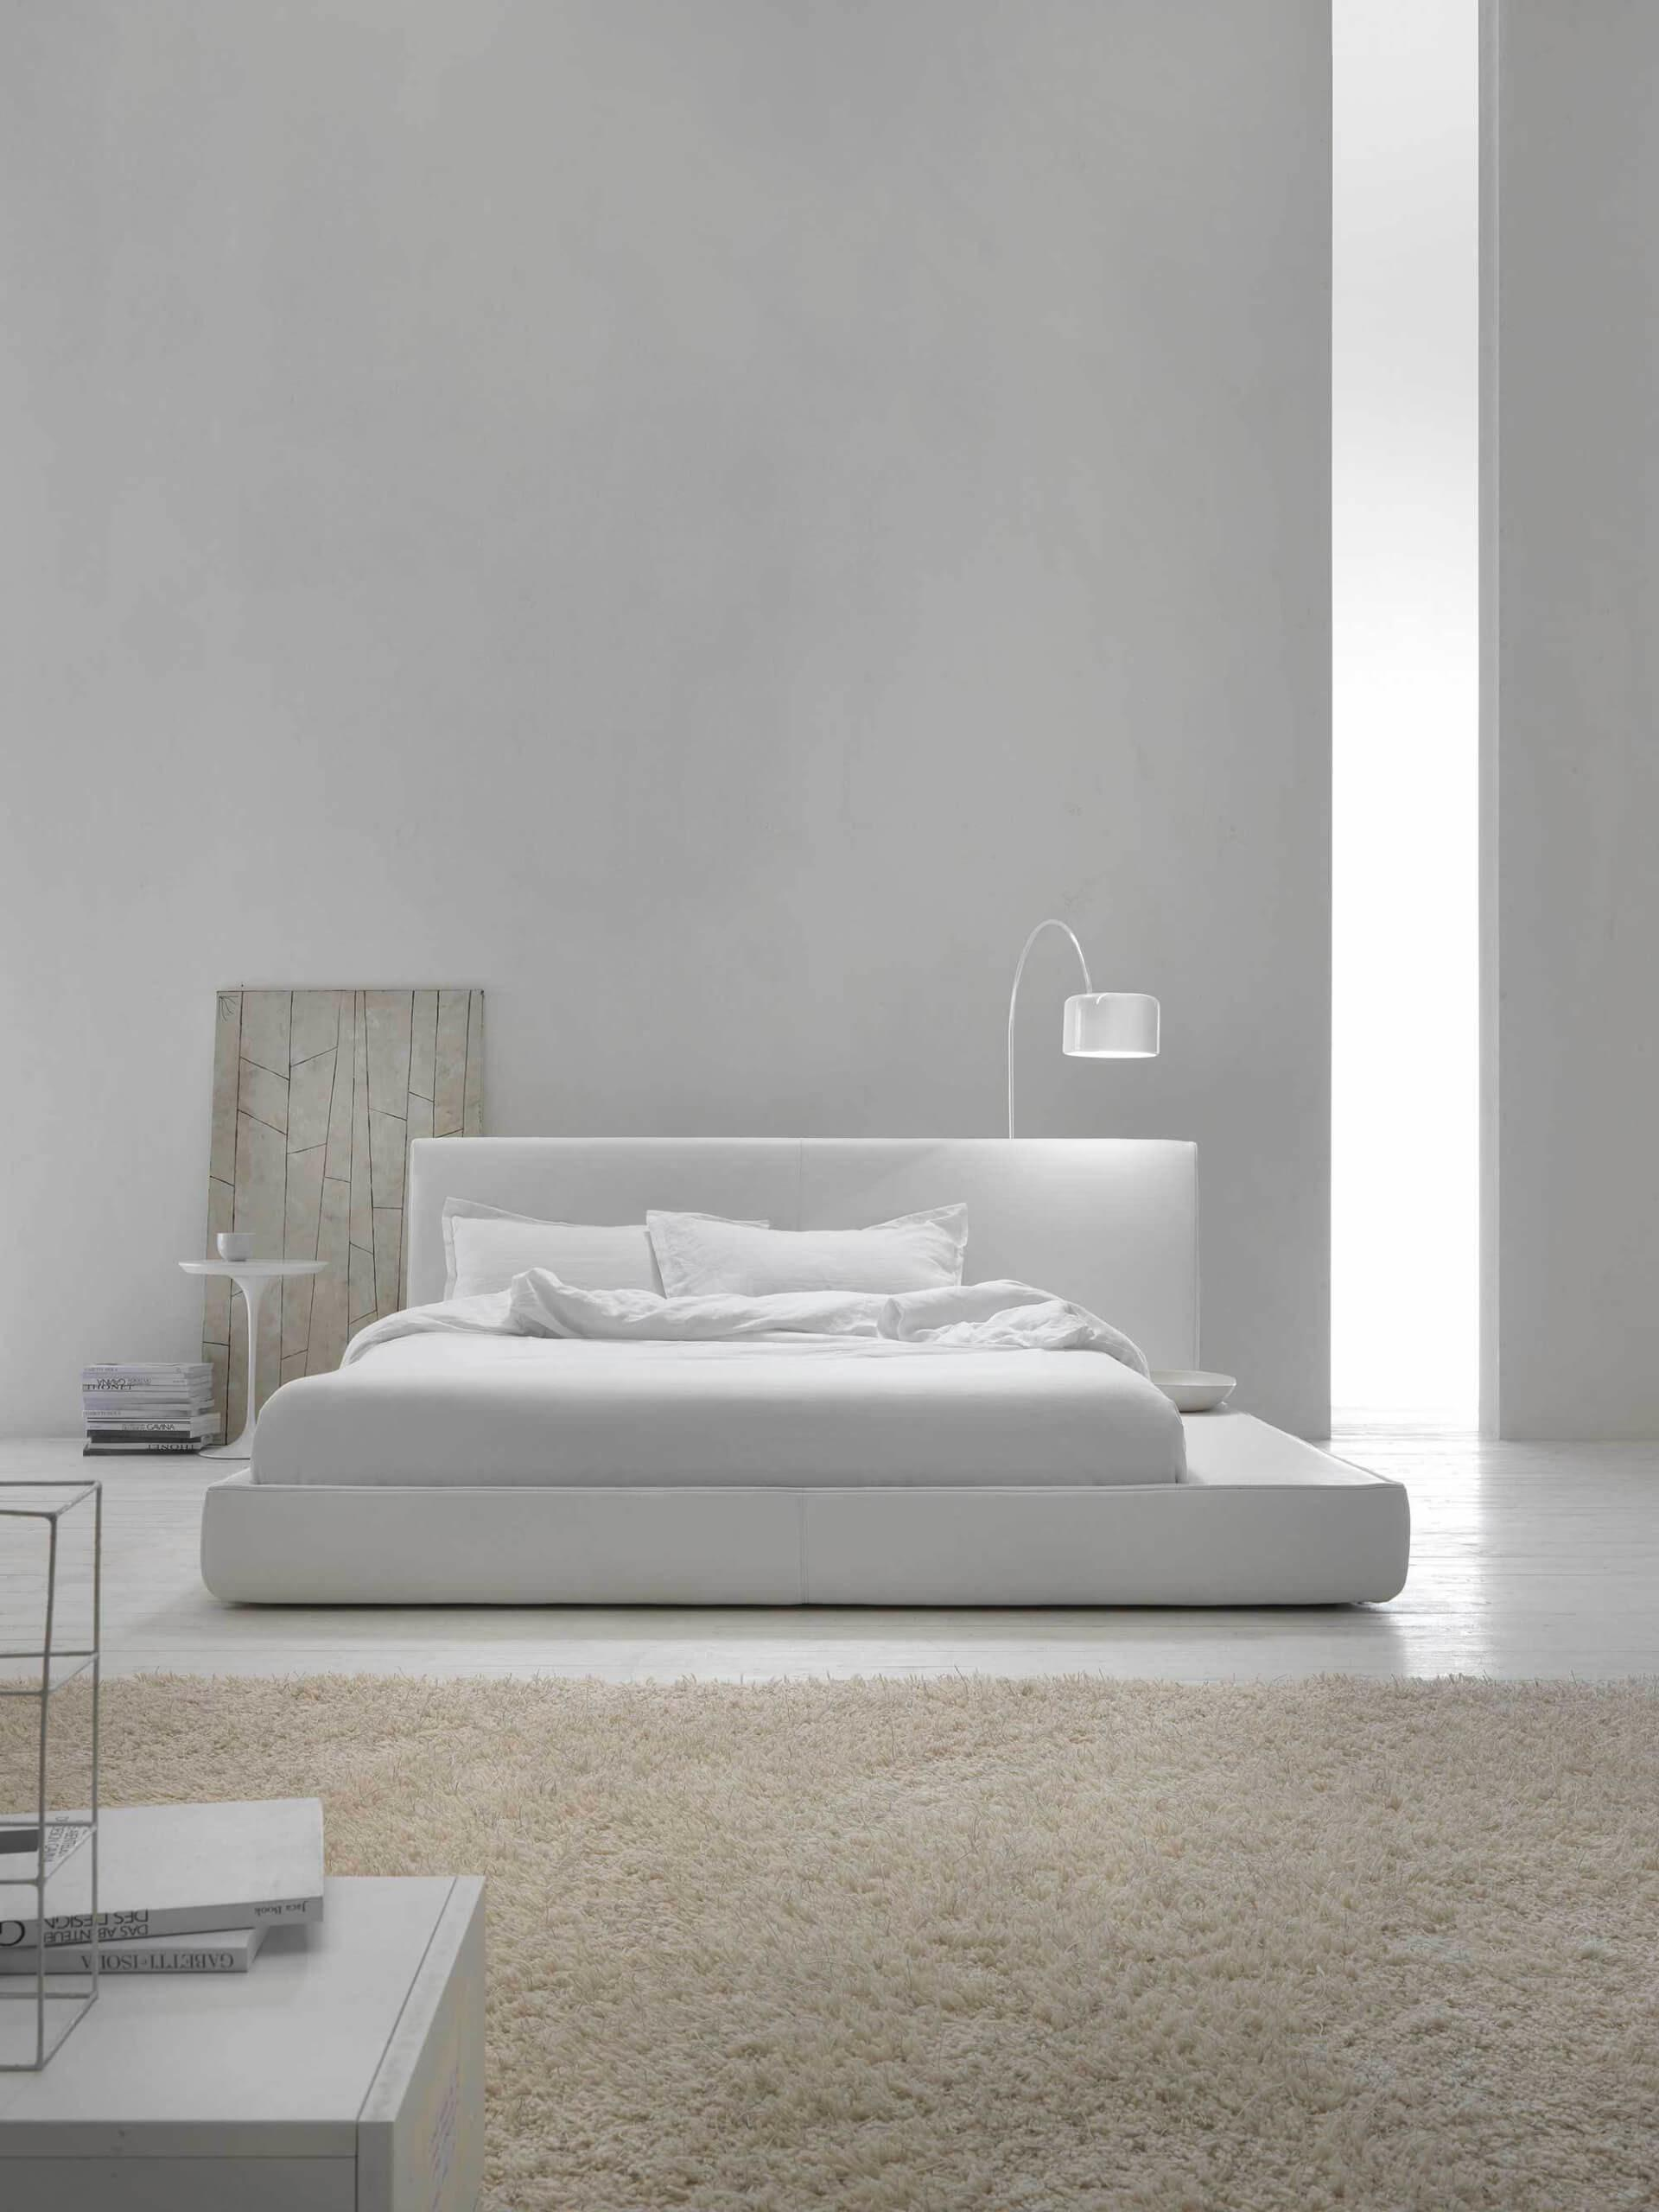 These Hottest Home Decor Trends 2018 Nonagon